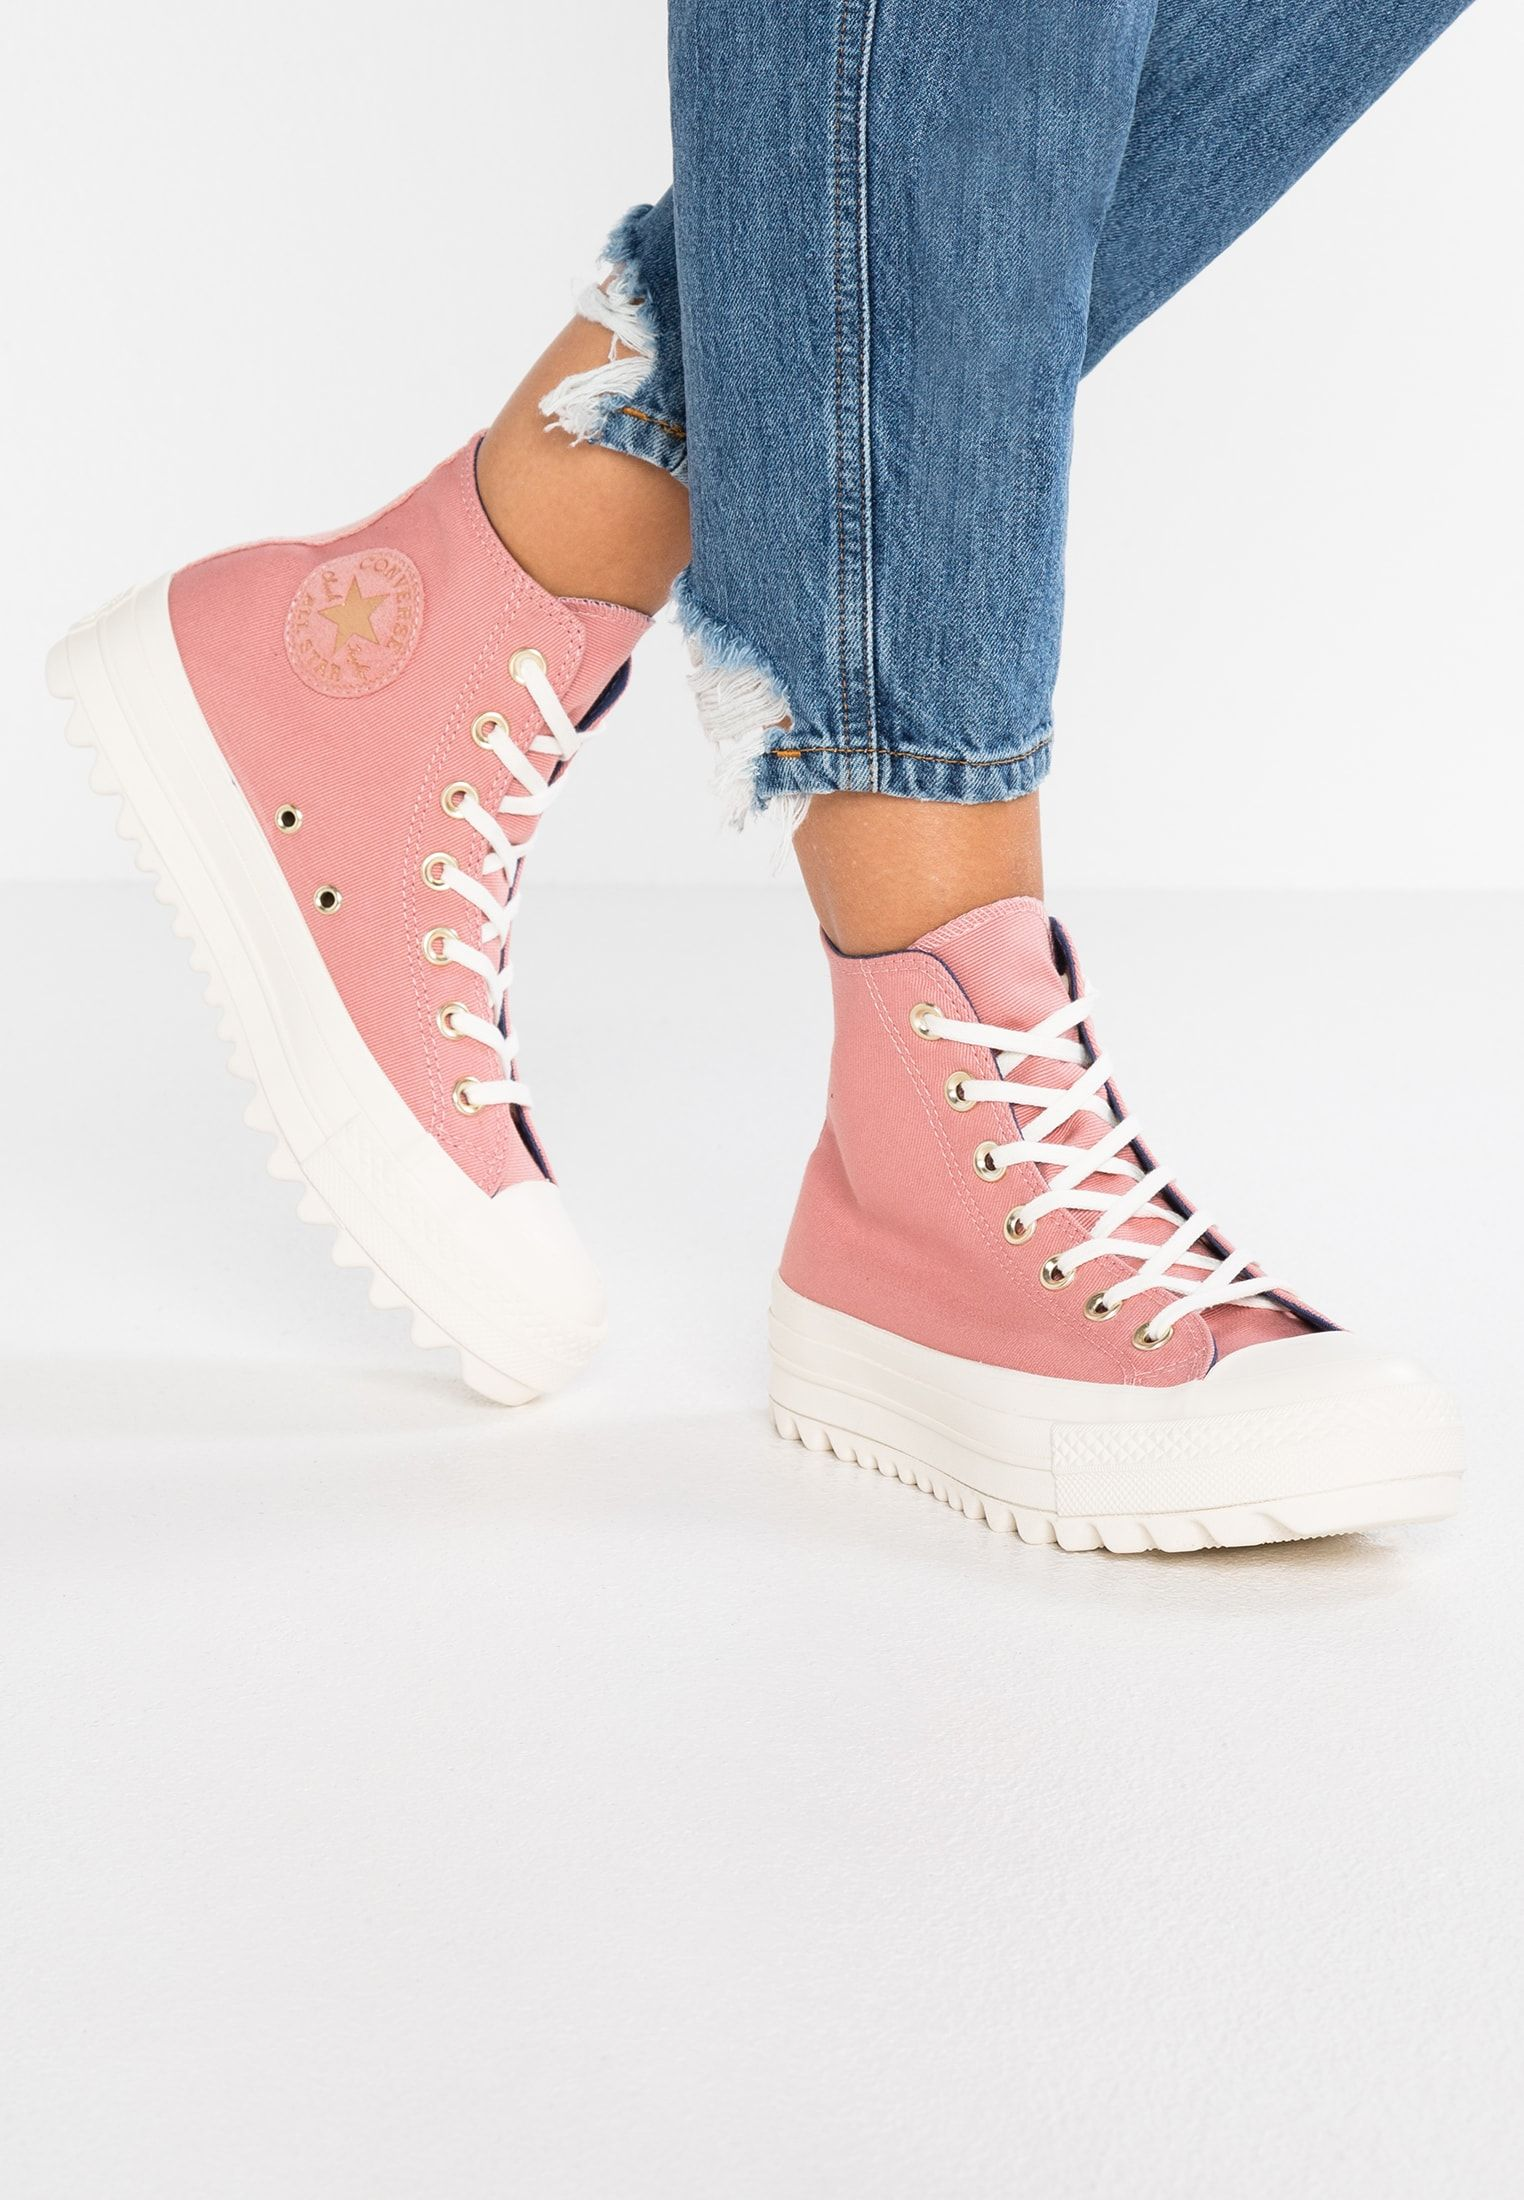 Scadenza Accidentale Feudale  Converse CHUCK TAYLOR ALL STAR LIFT RIPPLE - High-top trainers - rust  pink/mason blue/egret - Zalando.co.…   Fab shoes, Converse chuck taylor all  star, Me too shoes